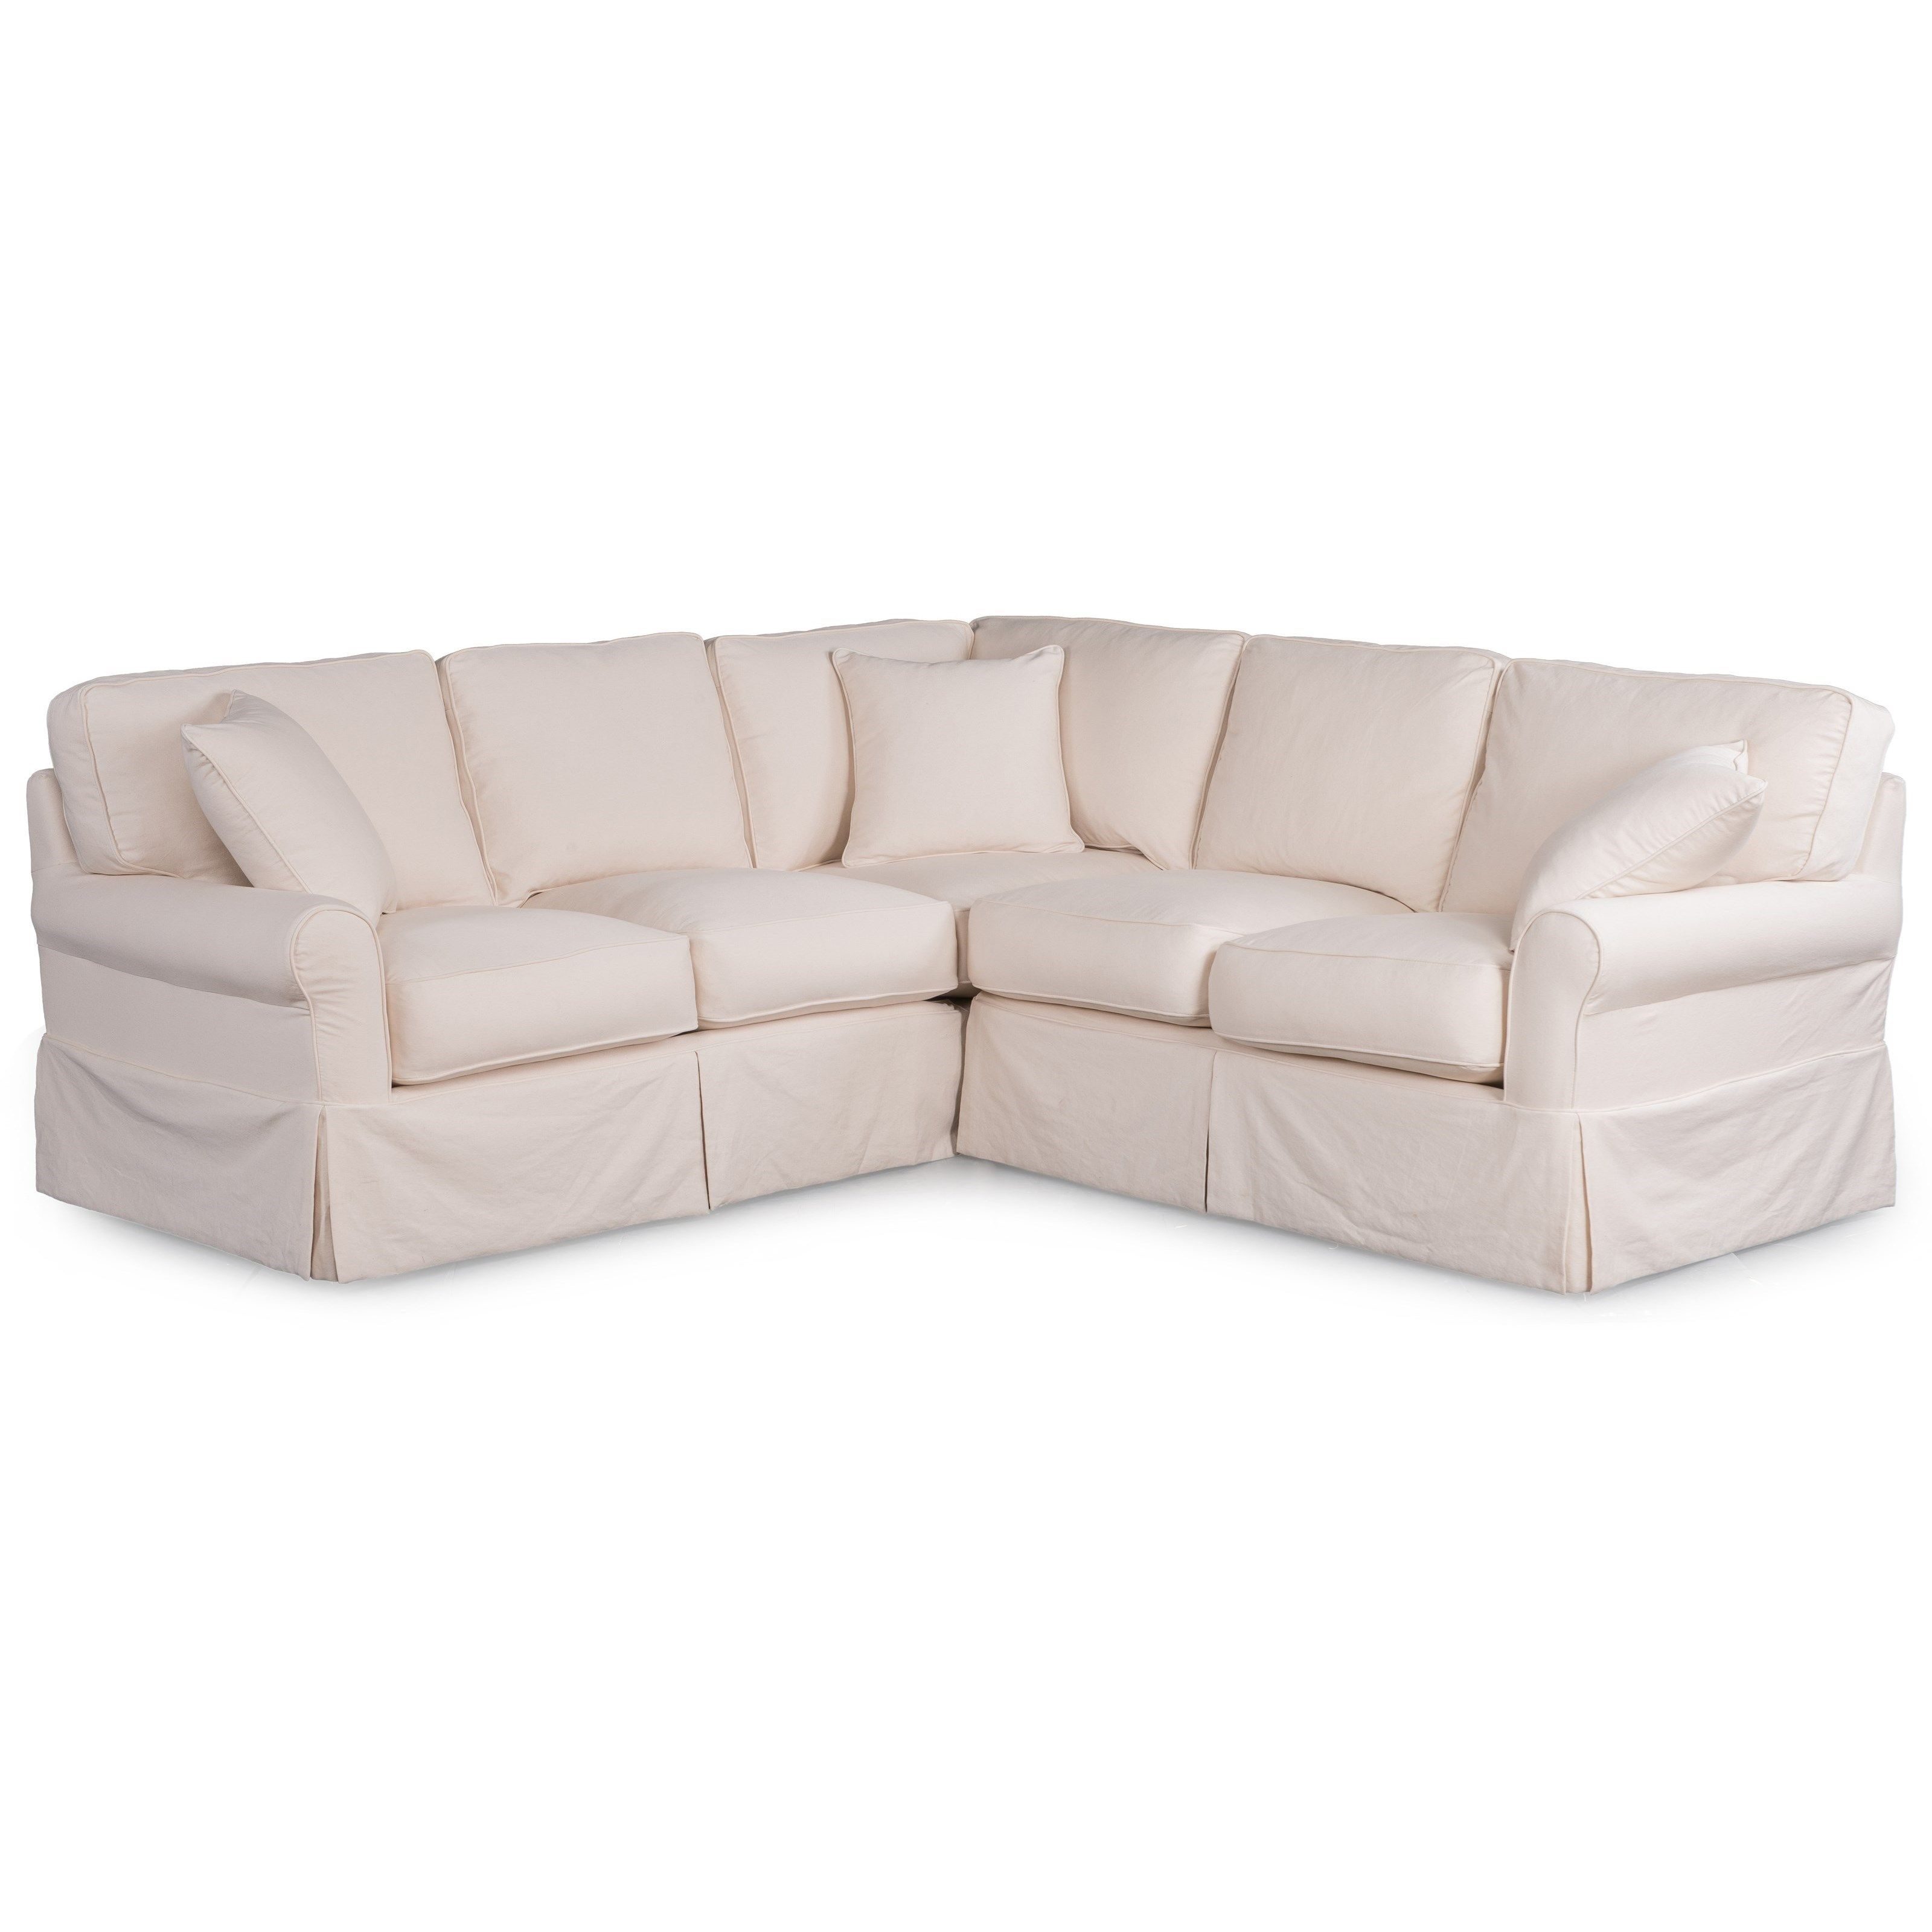 cheap sofas virginia beach one sofa or two synergy furniture home furnishings montague